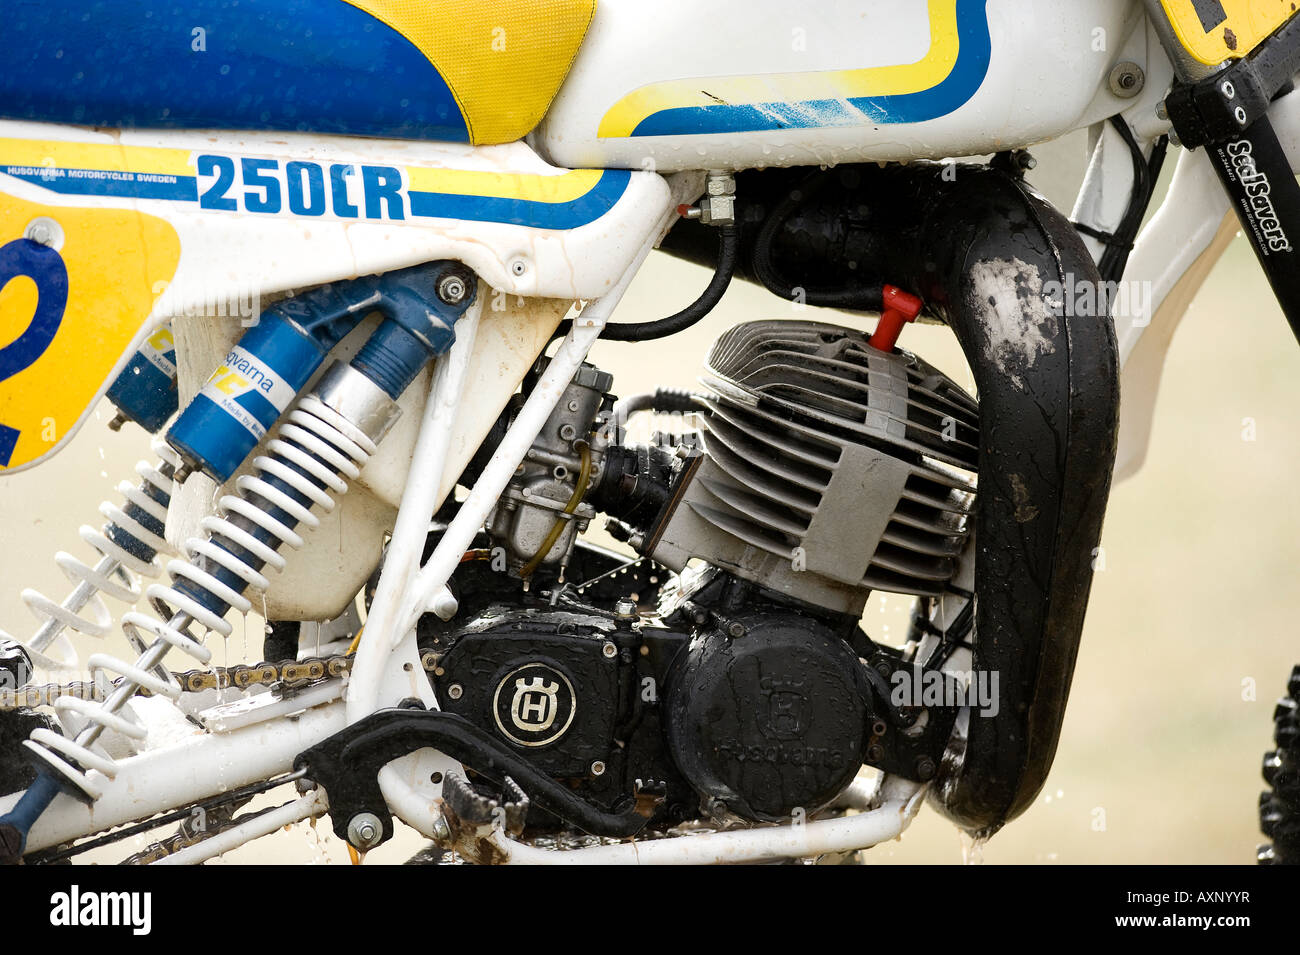 Twin shock vintage motocross muddy vintage 250CR Husqvarna Husky motocross with knobbly tyres tires twin-shock dirt - Stock Image